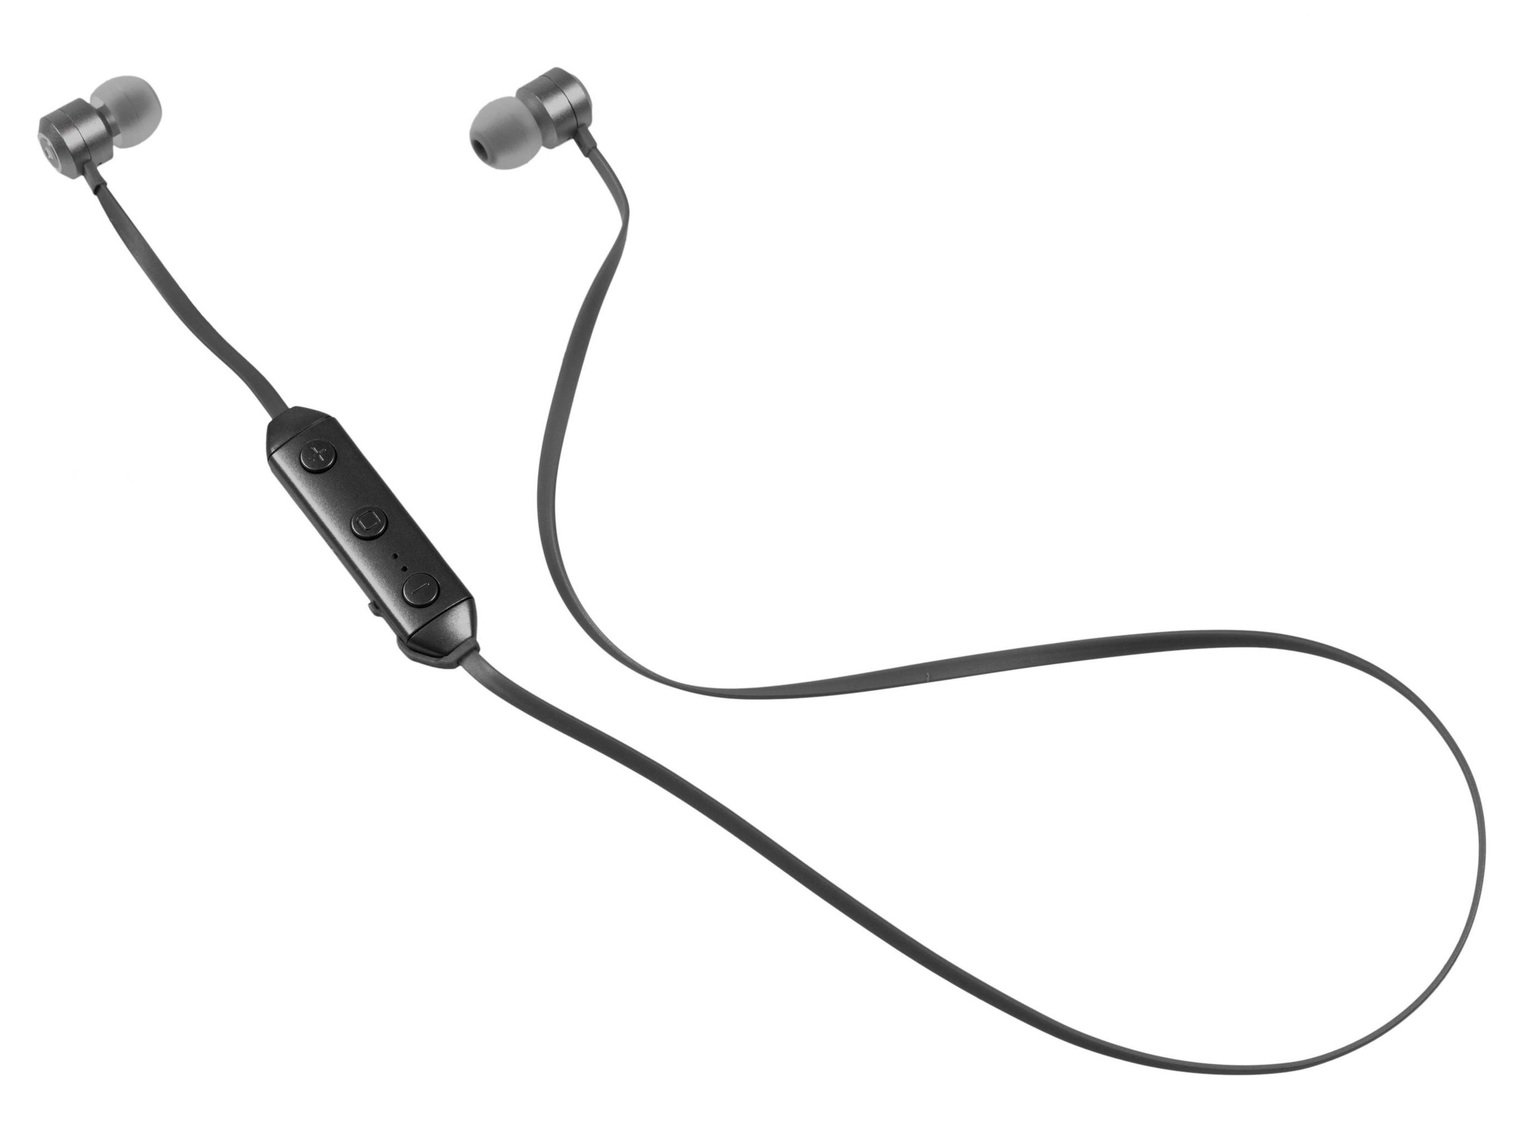 KitSound Ribbons Wireless In-Ear Headphones - Black